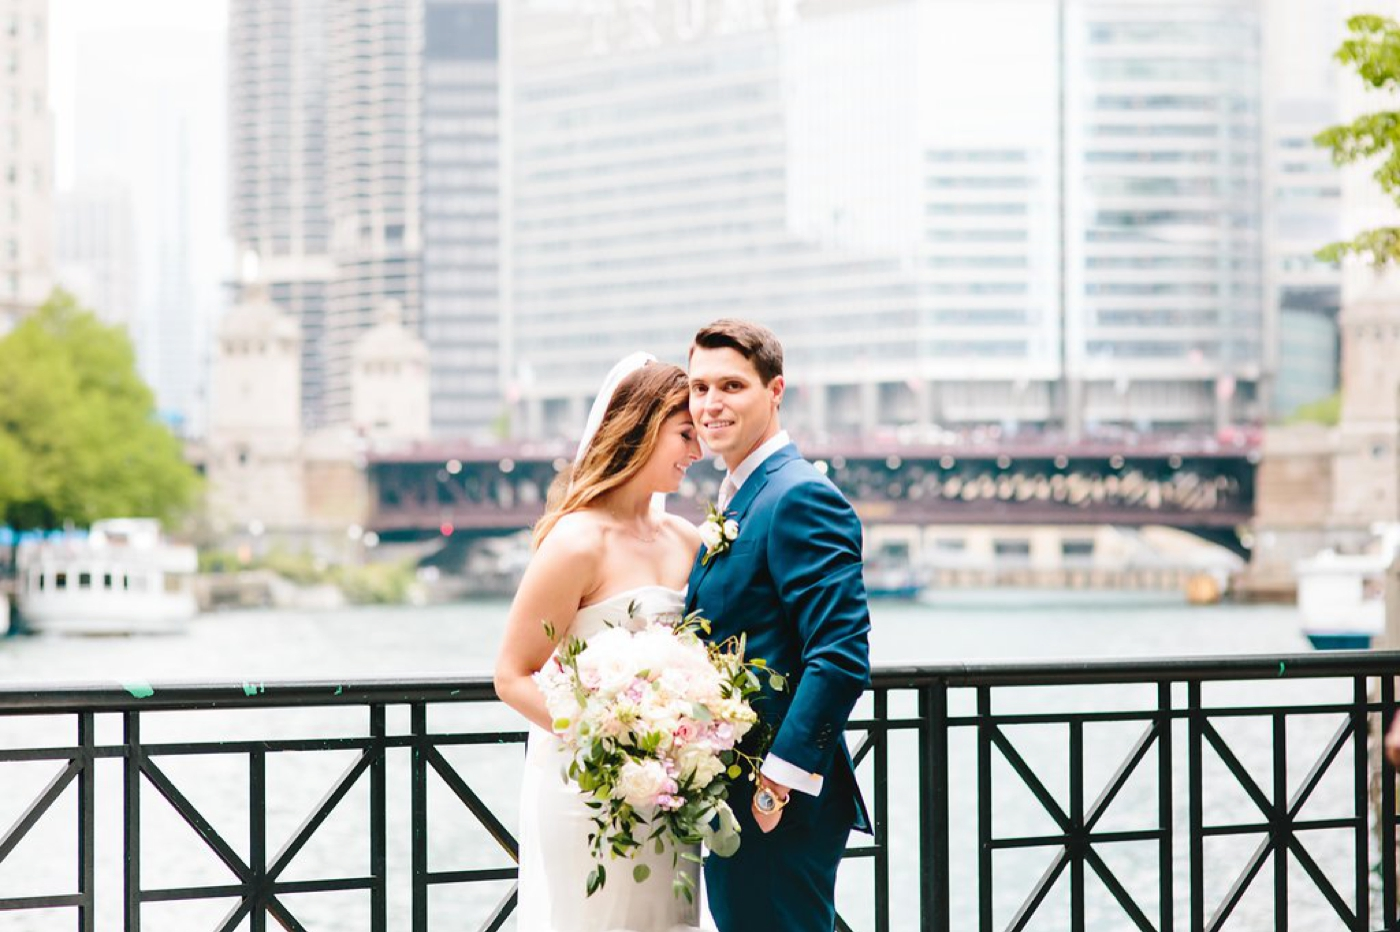 chicago-fine-art-wedding-photography-mclaughlin28